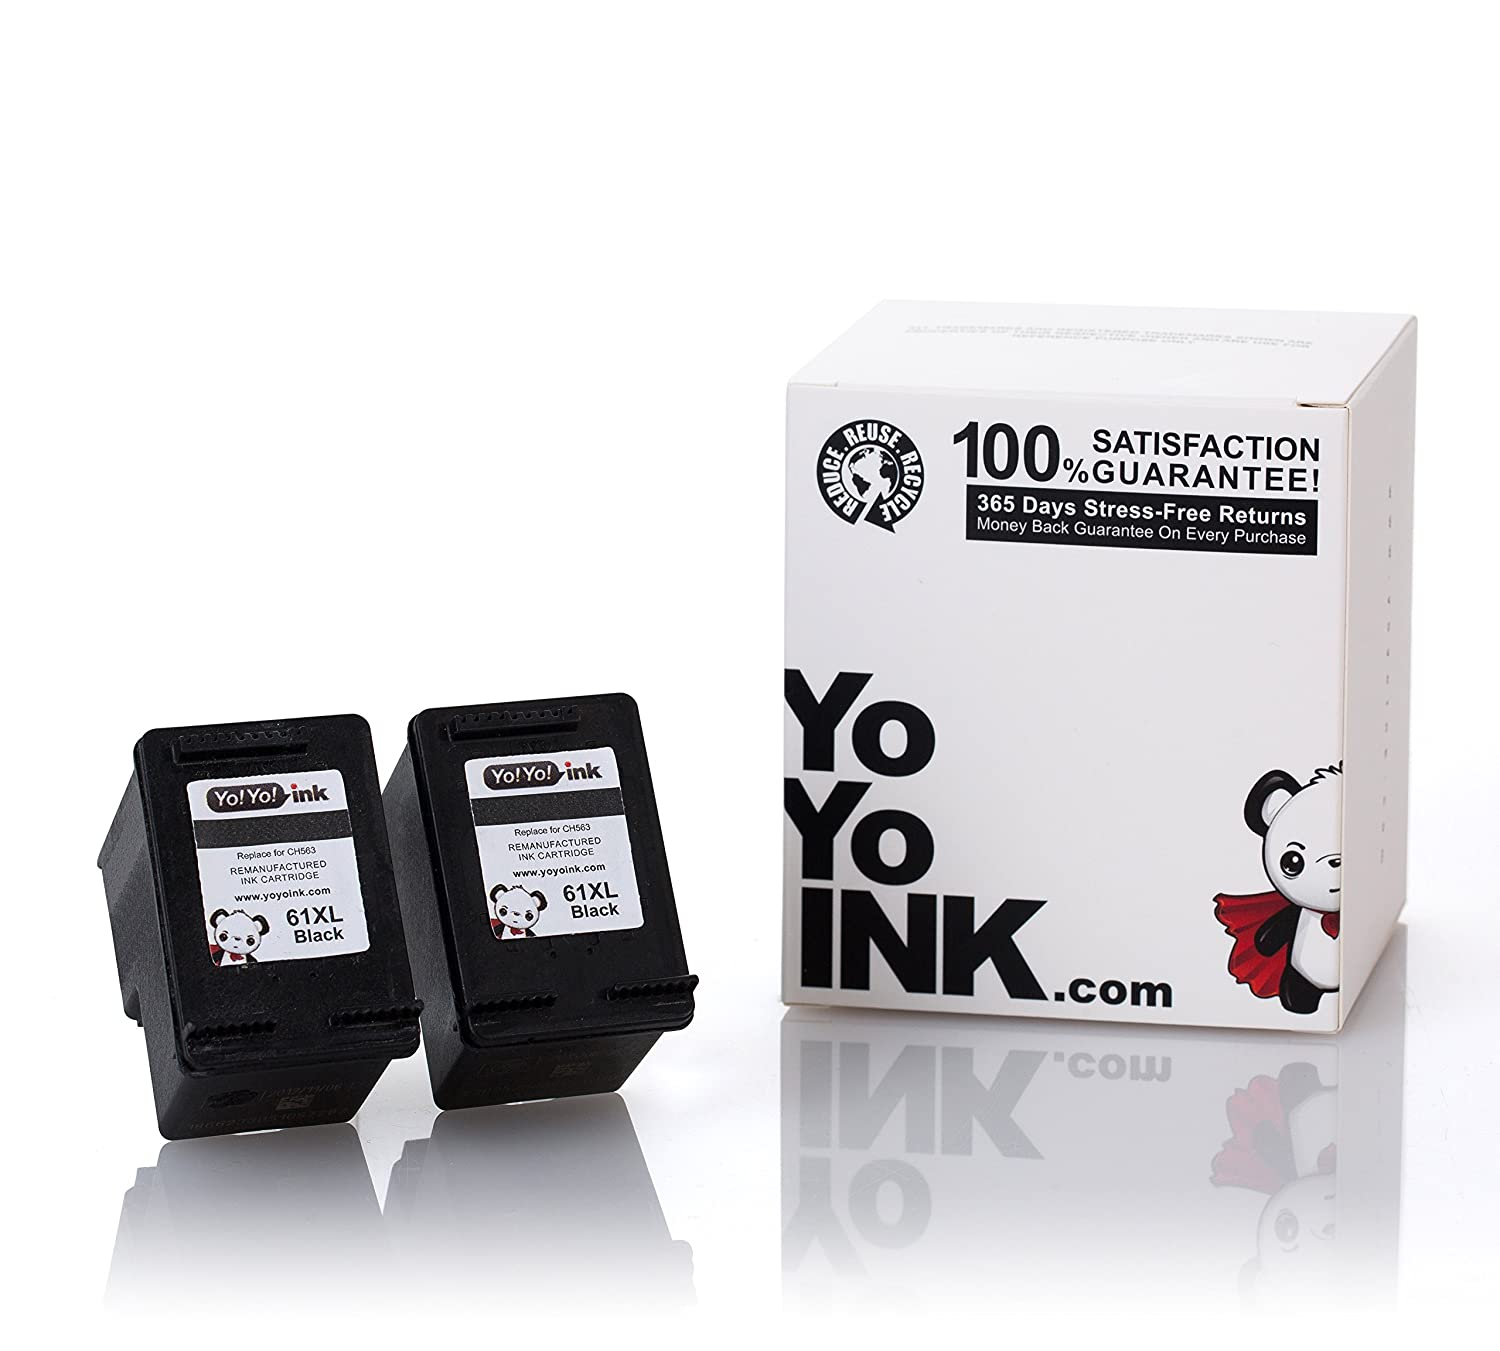 Amazon YoYoInk Remanufactured Ink Cartridge Replacement for HP 61 XL 61XL 2 Black for HP Deskjet 2540 Envy 4500 ficeJet 4500 4630 puters &